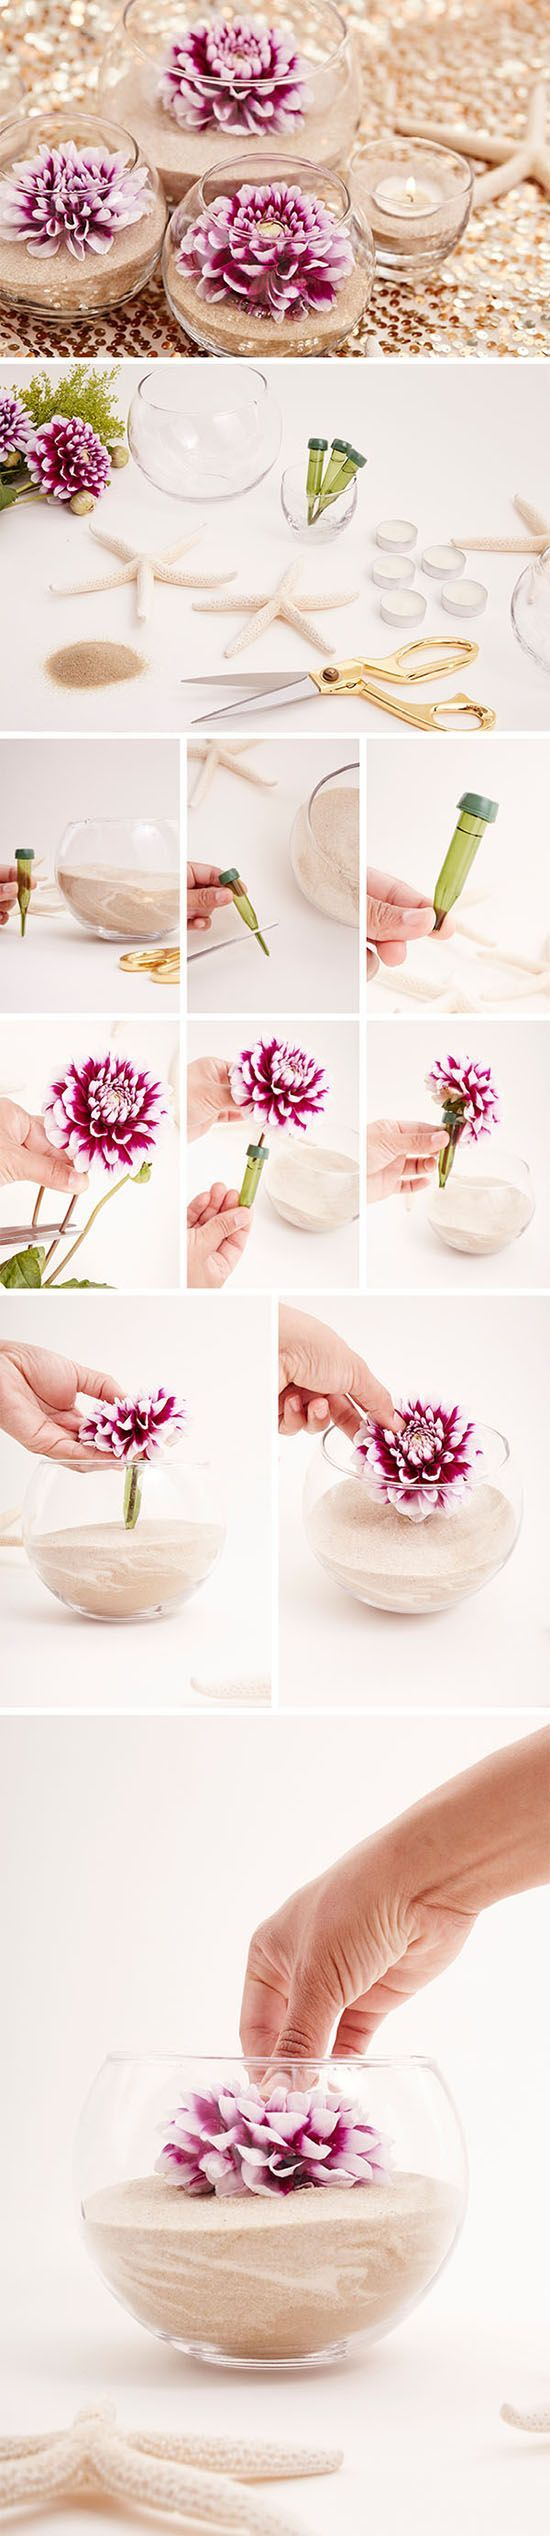 diy flower and sand glass wedding centerpieces / http://www.himisspuff.com/diy-wedding-centerpieces-on-a-budget/8/